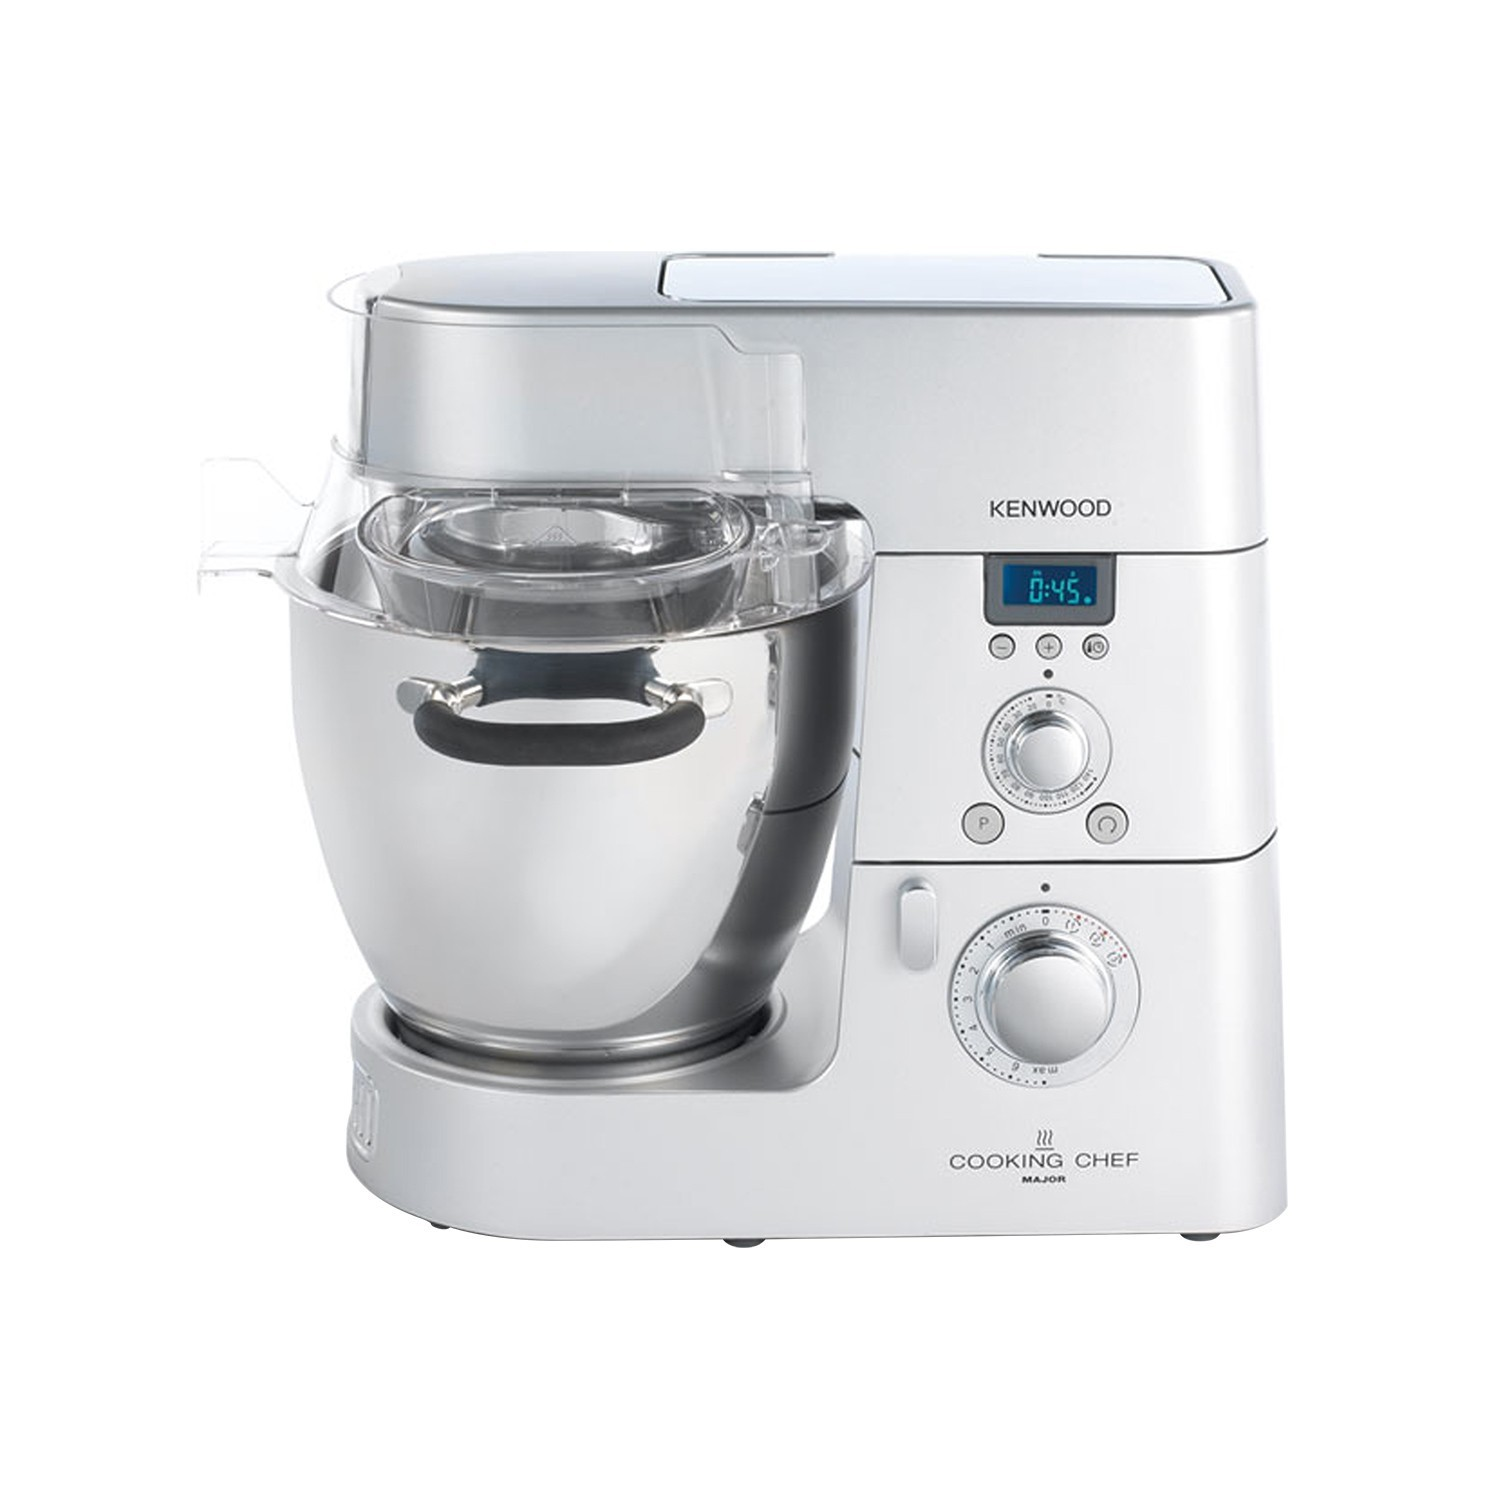 Kenwood Cooking Chef KM082 1500W Robot Cucina Silver